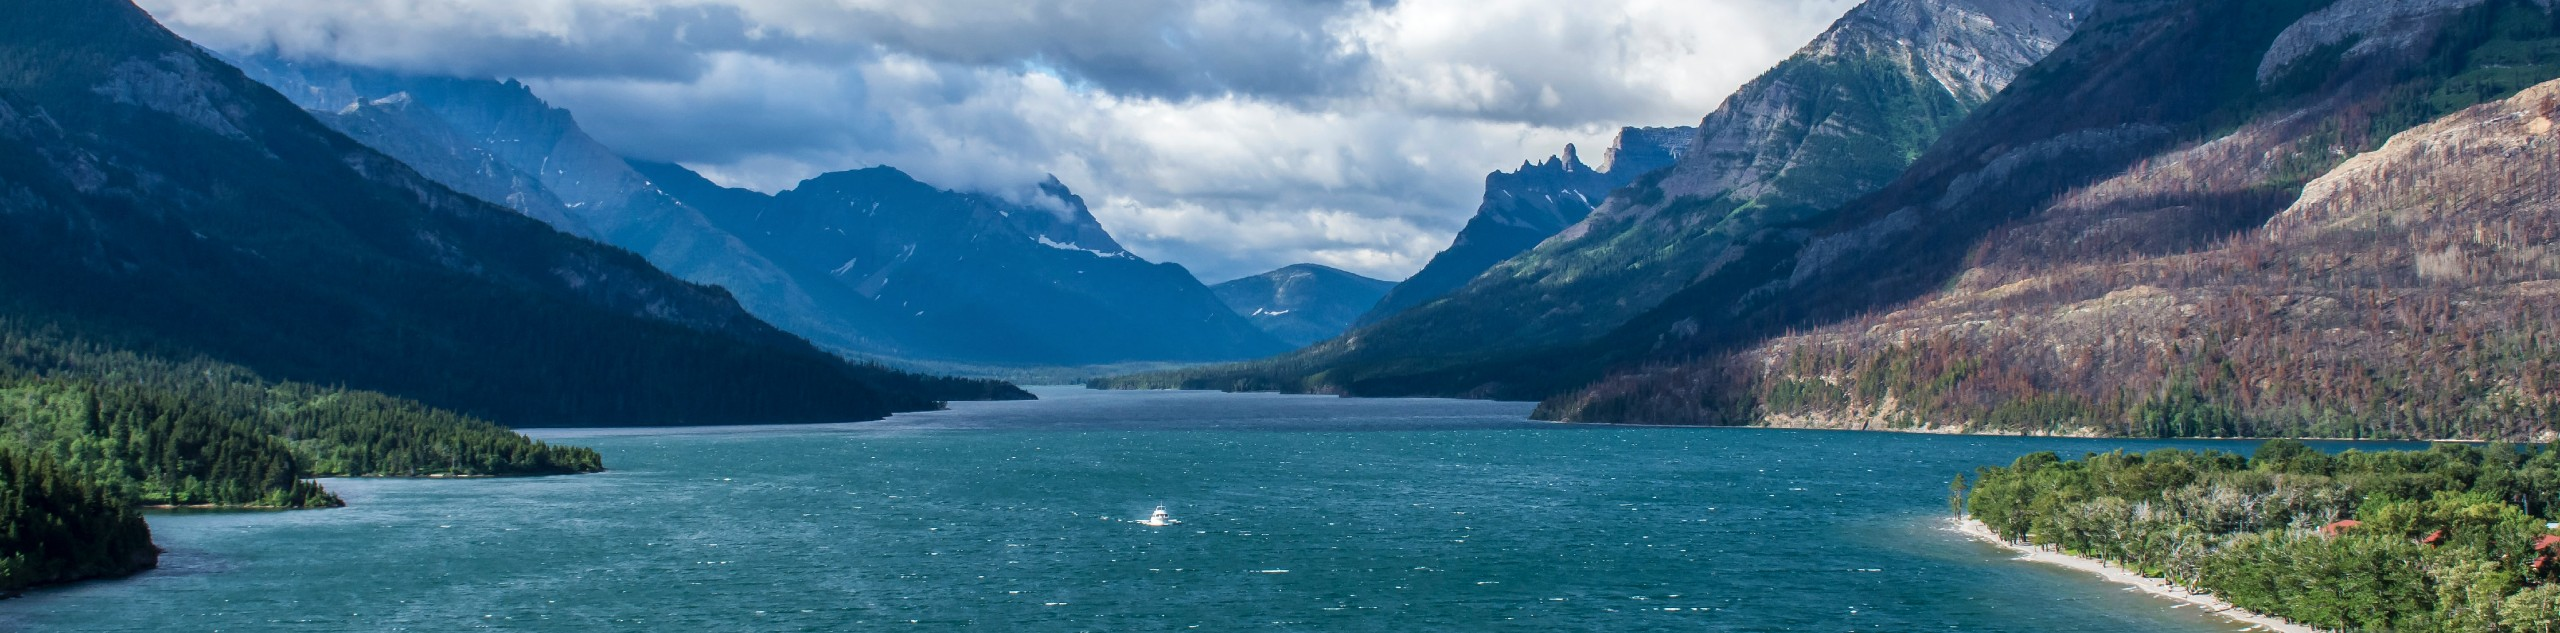 Cloudy day over Waterton Lakes